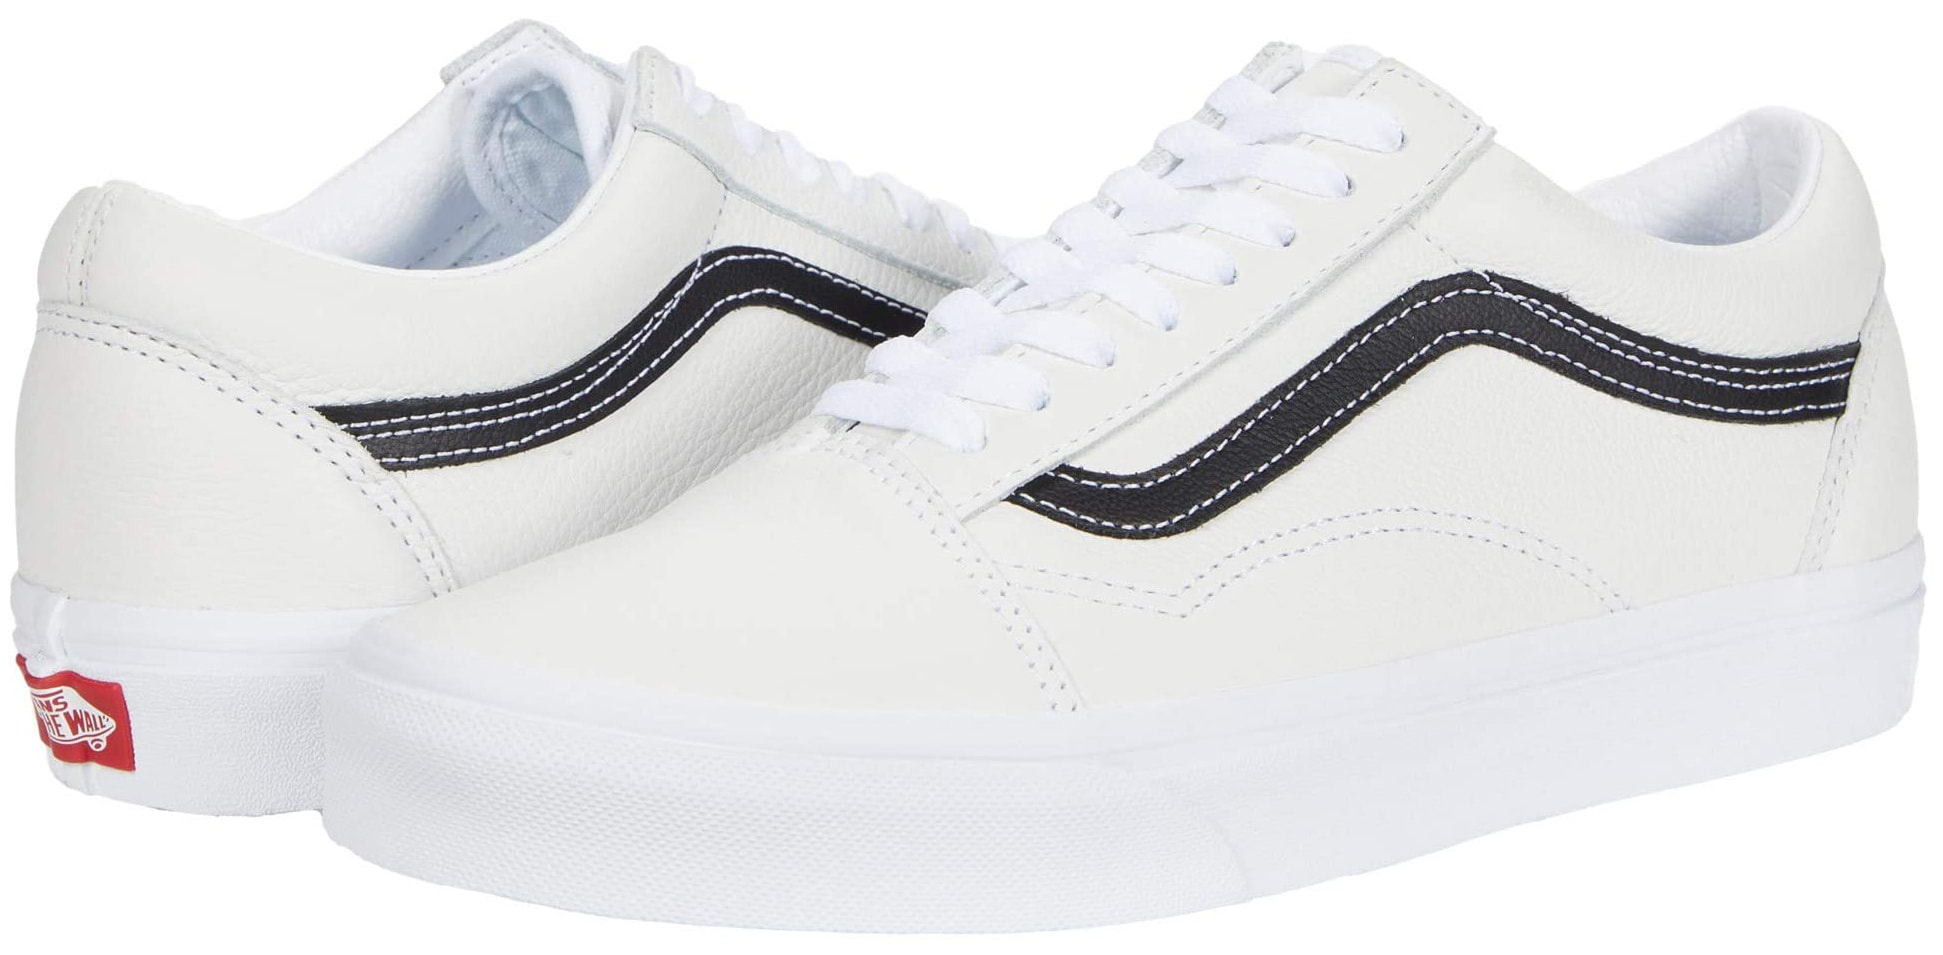 The iconic Old Skool gives off the classic SoCal vibe with a low-profile silhouette and a Sidestripe detail